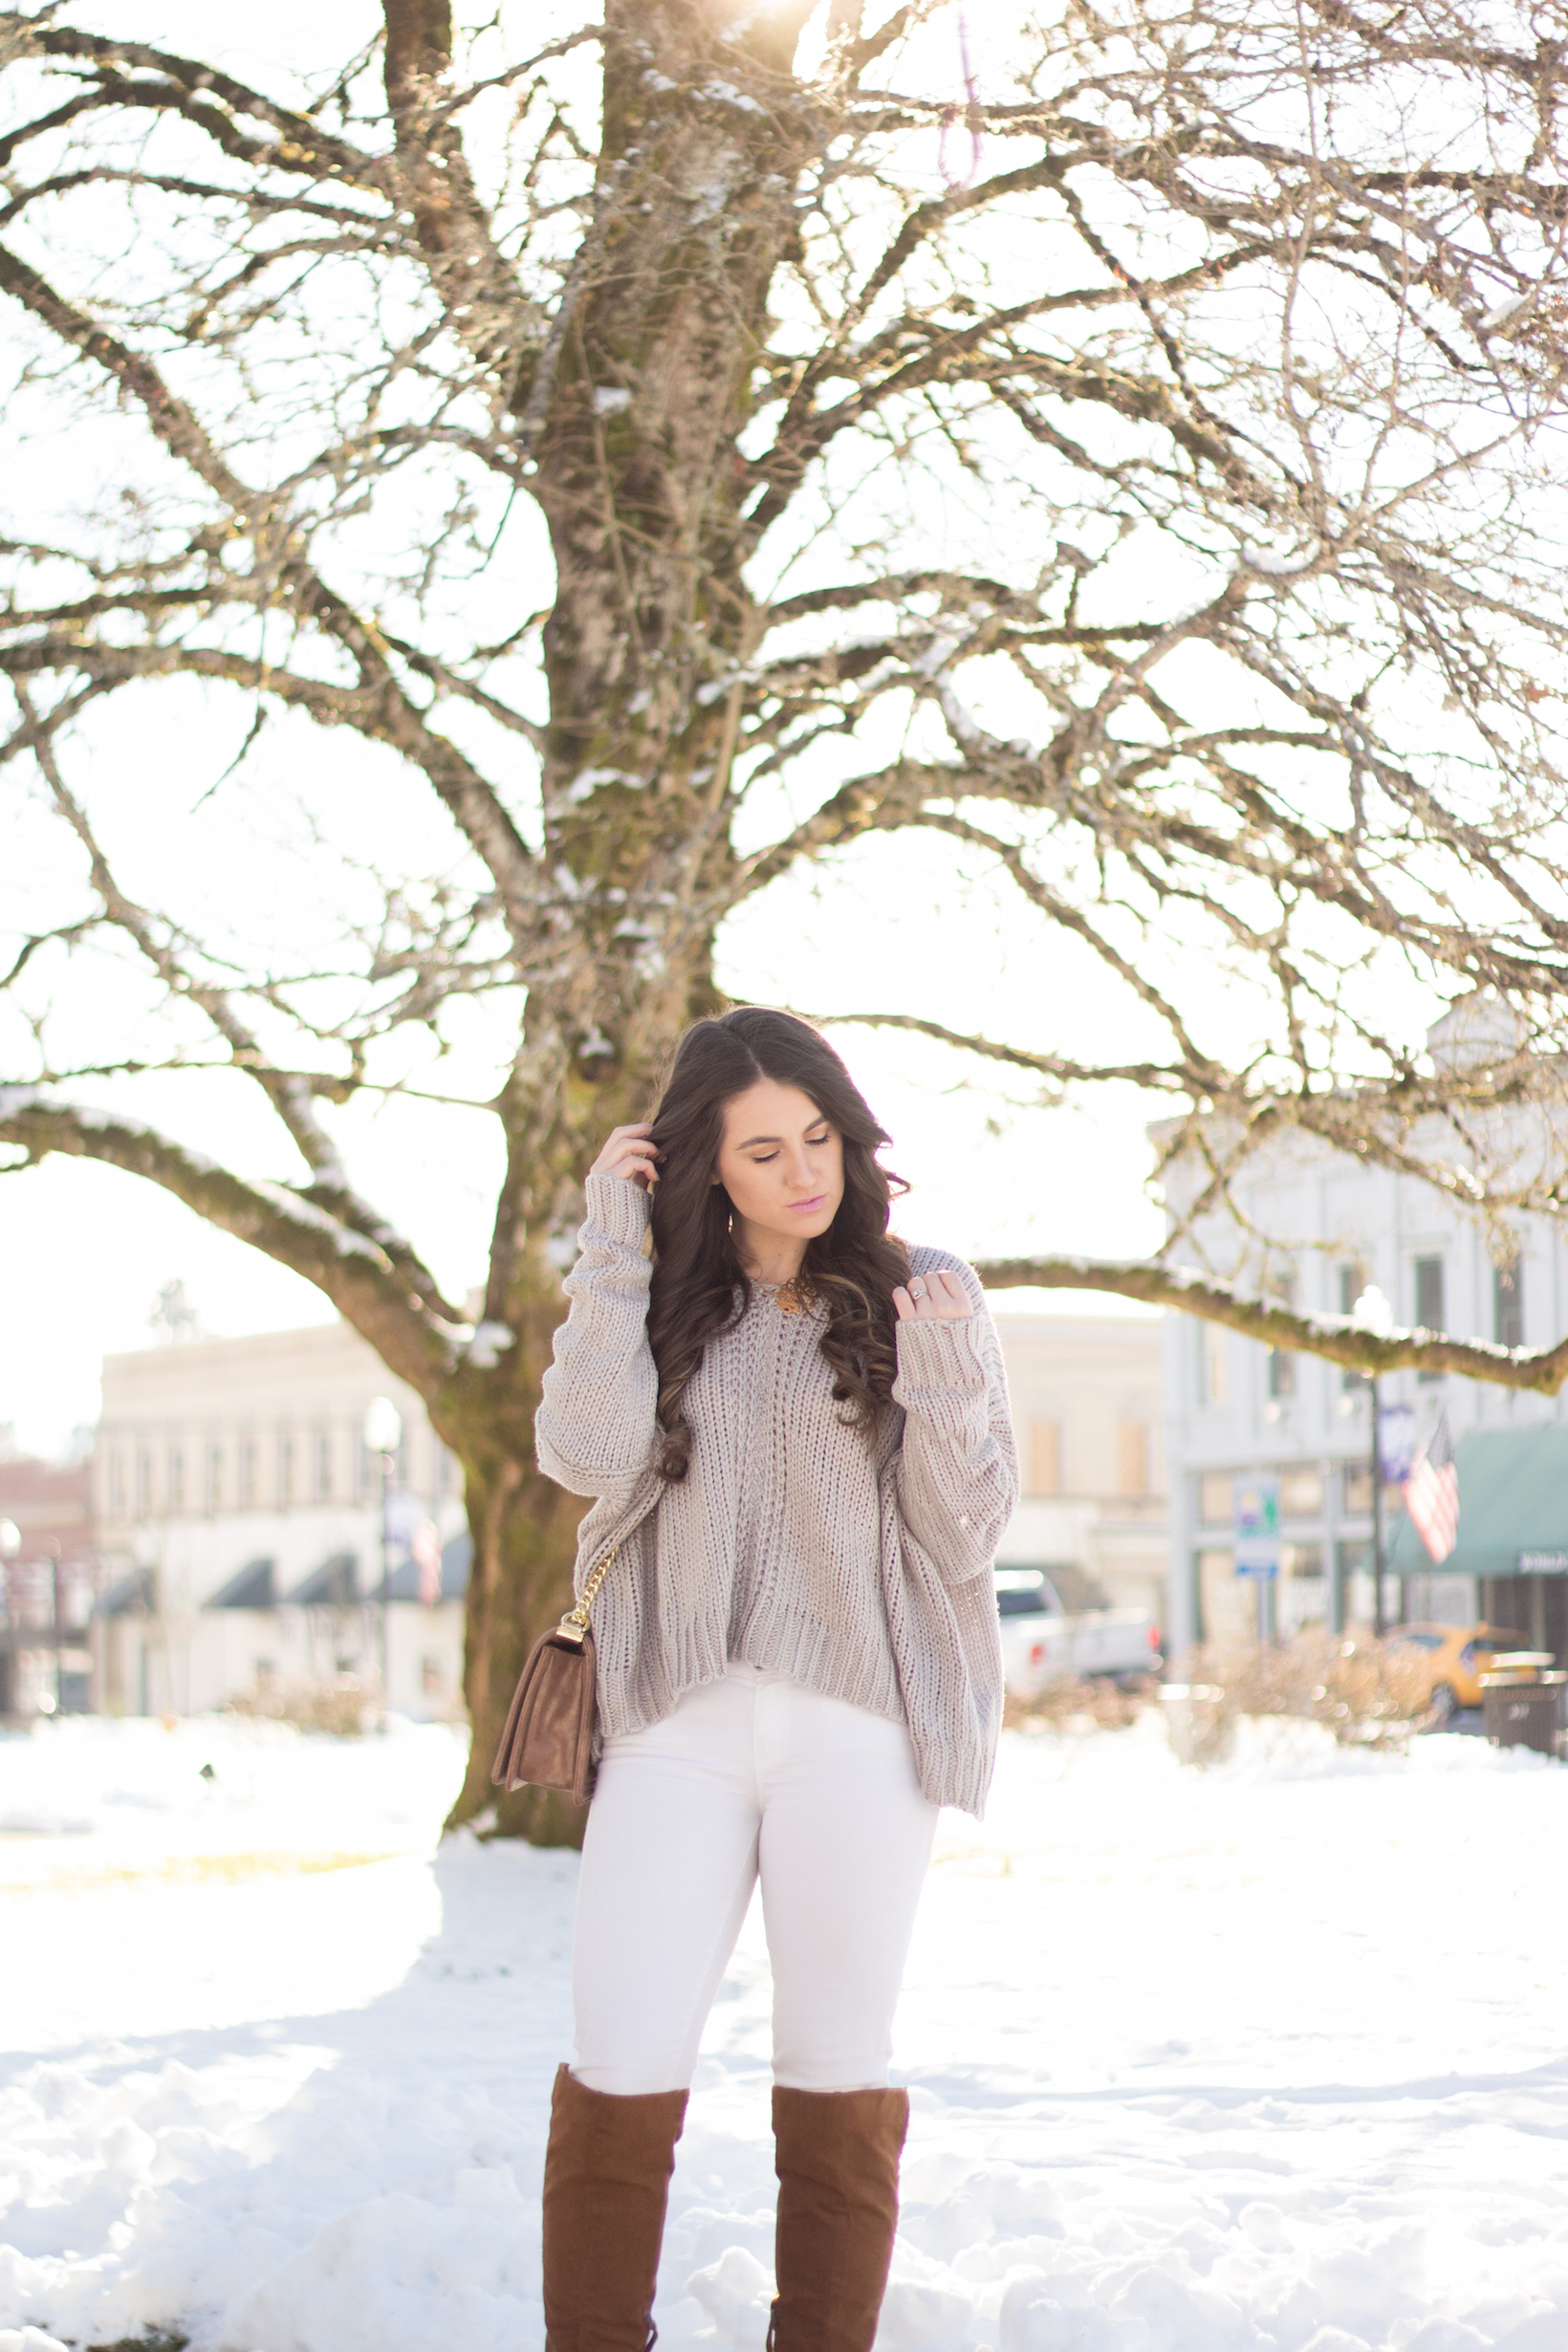 The perfect Winter look in this oversized grey sweater and over the knee boots.